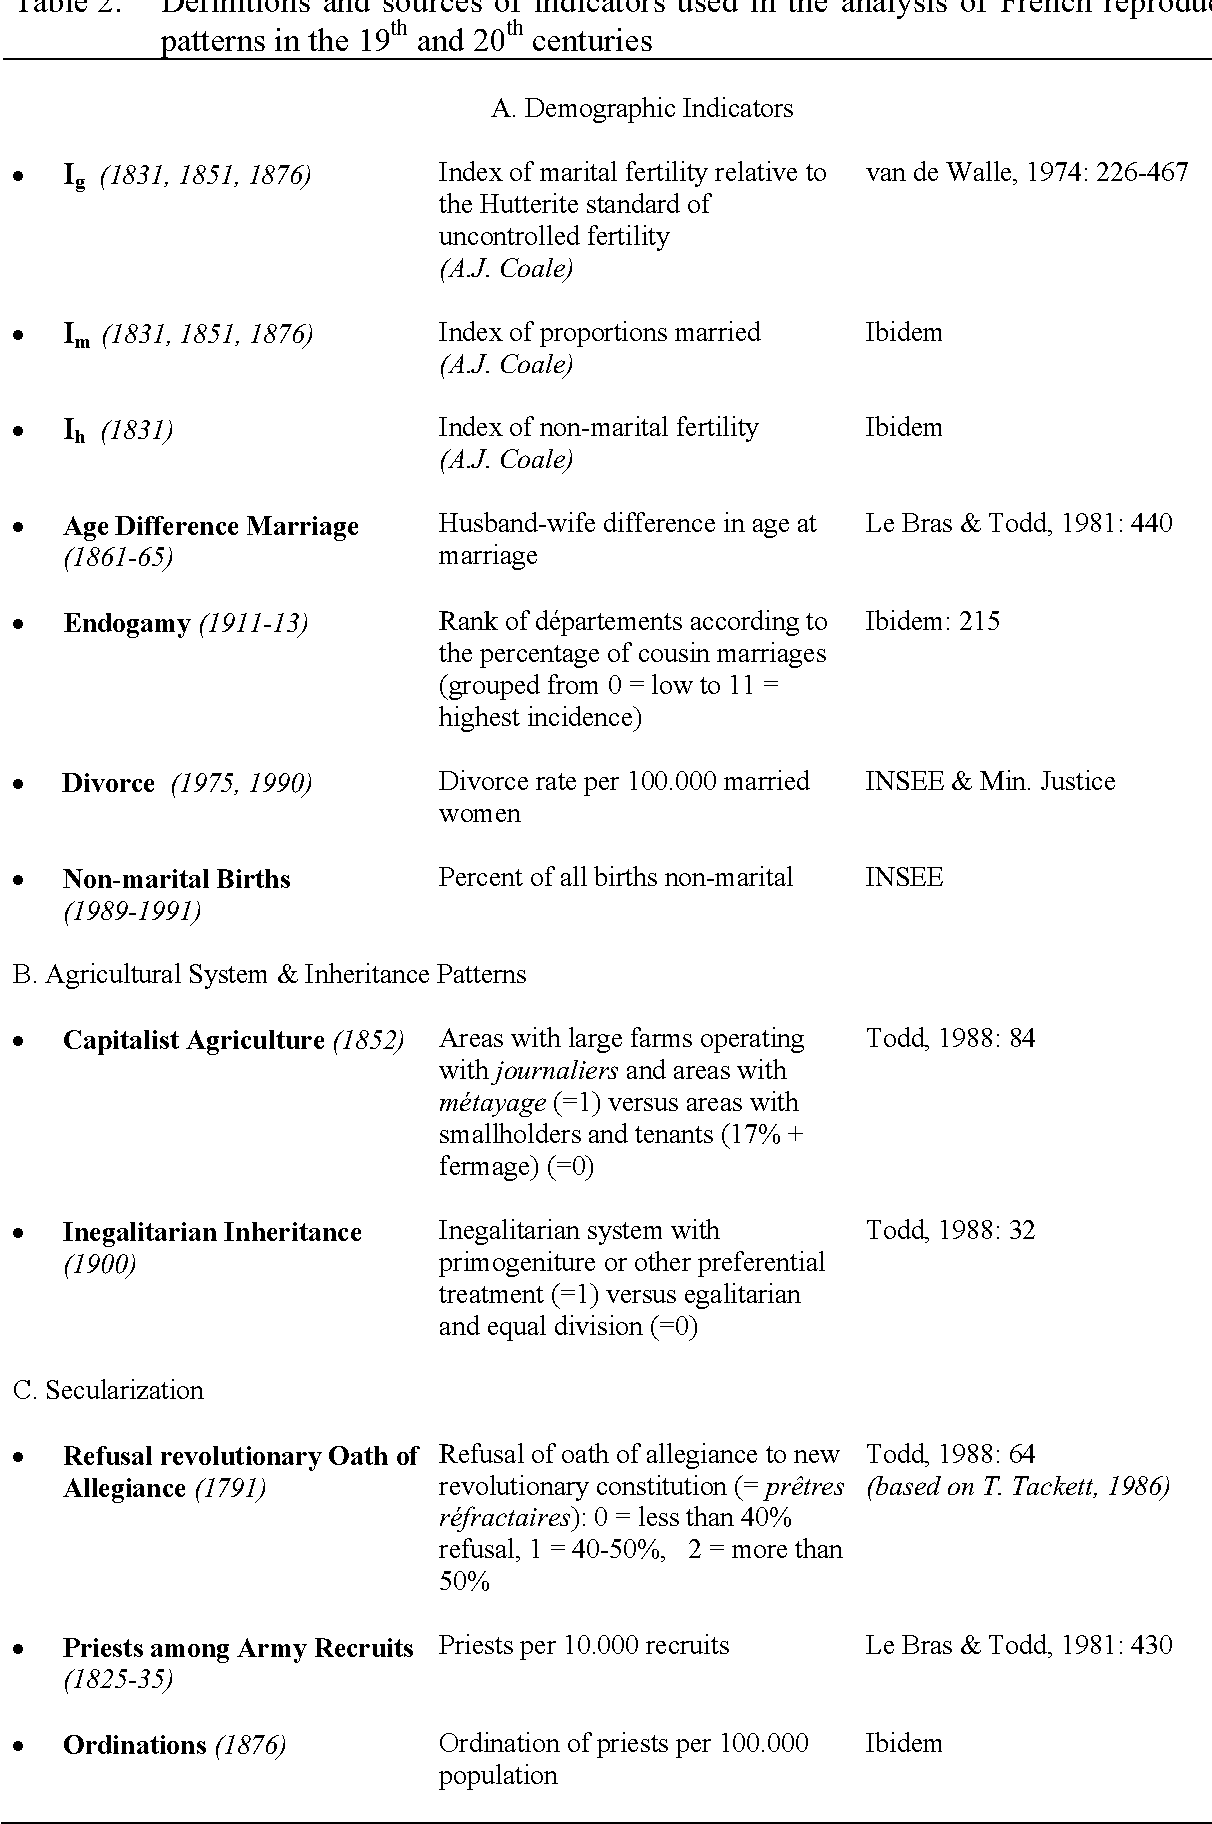 Table 2 from From the First to the Second Demographic Transition: An